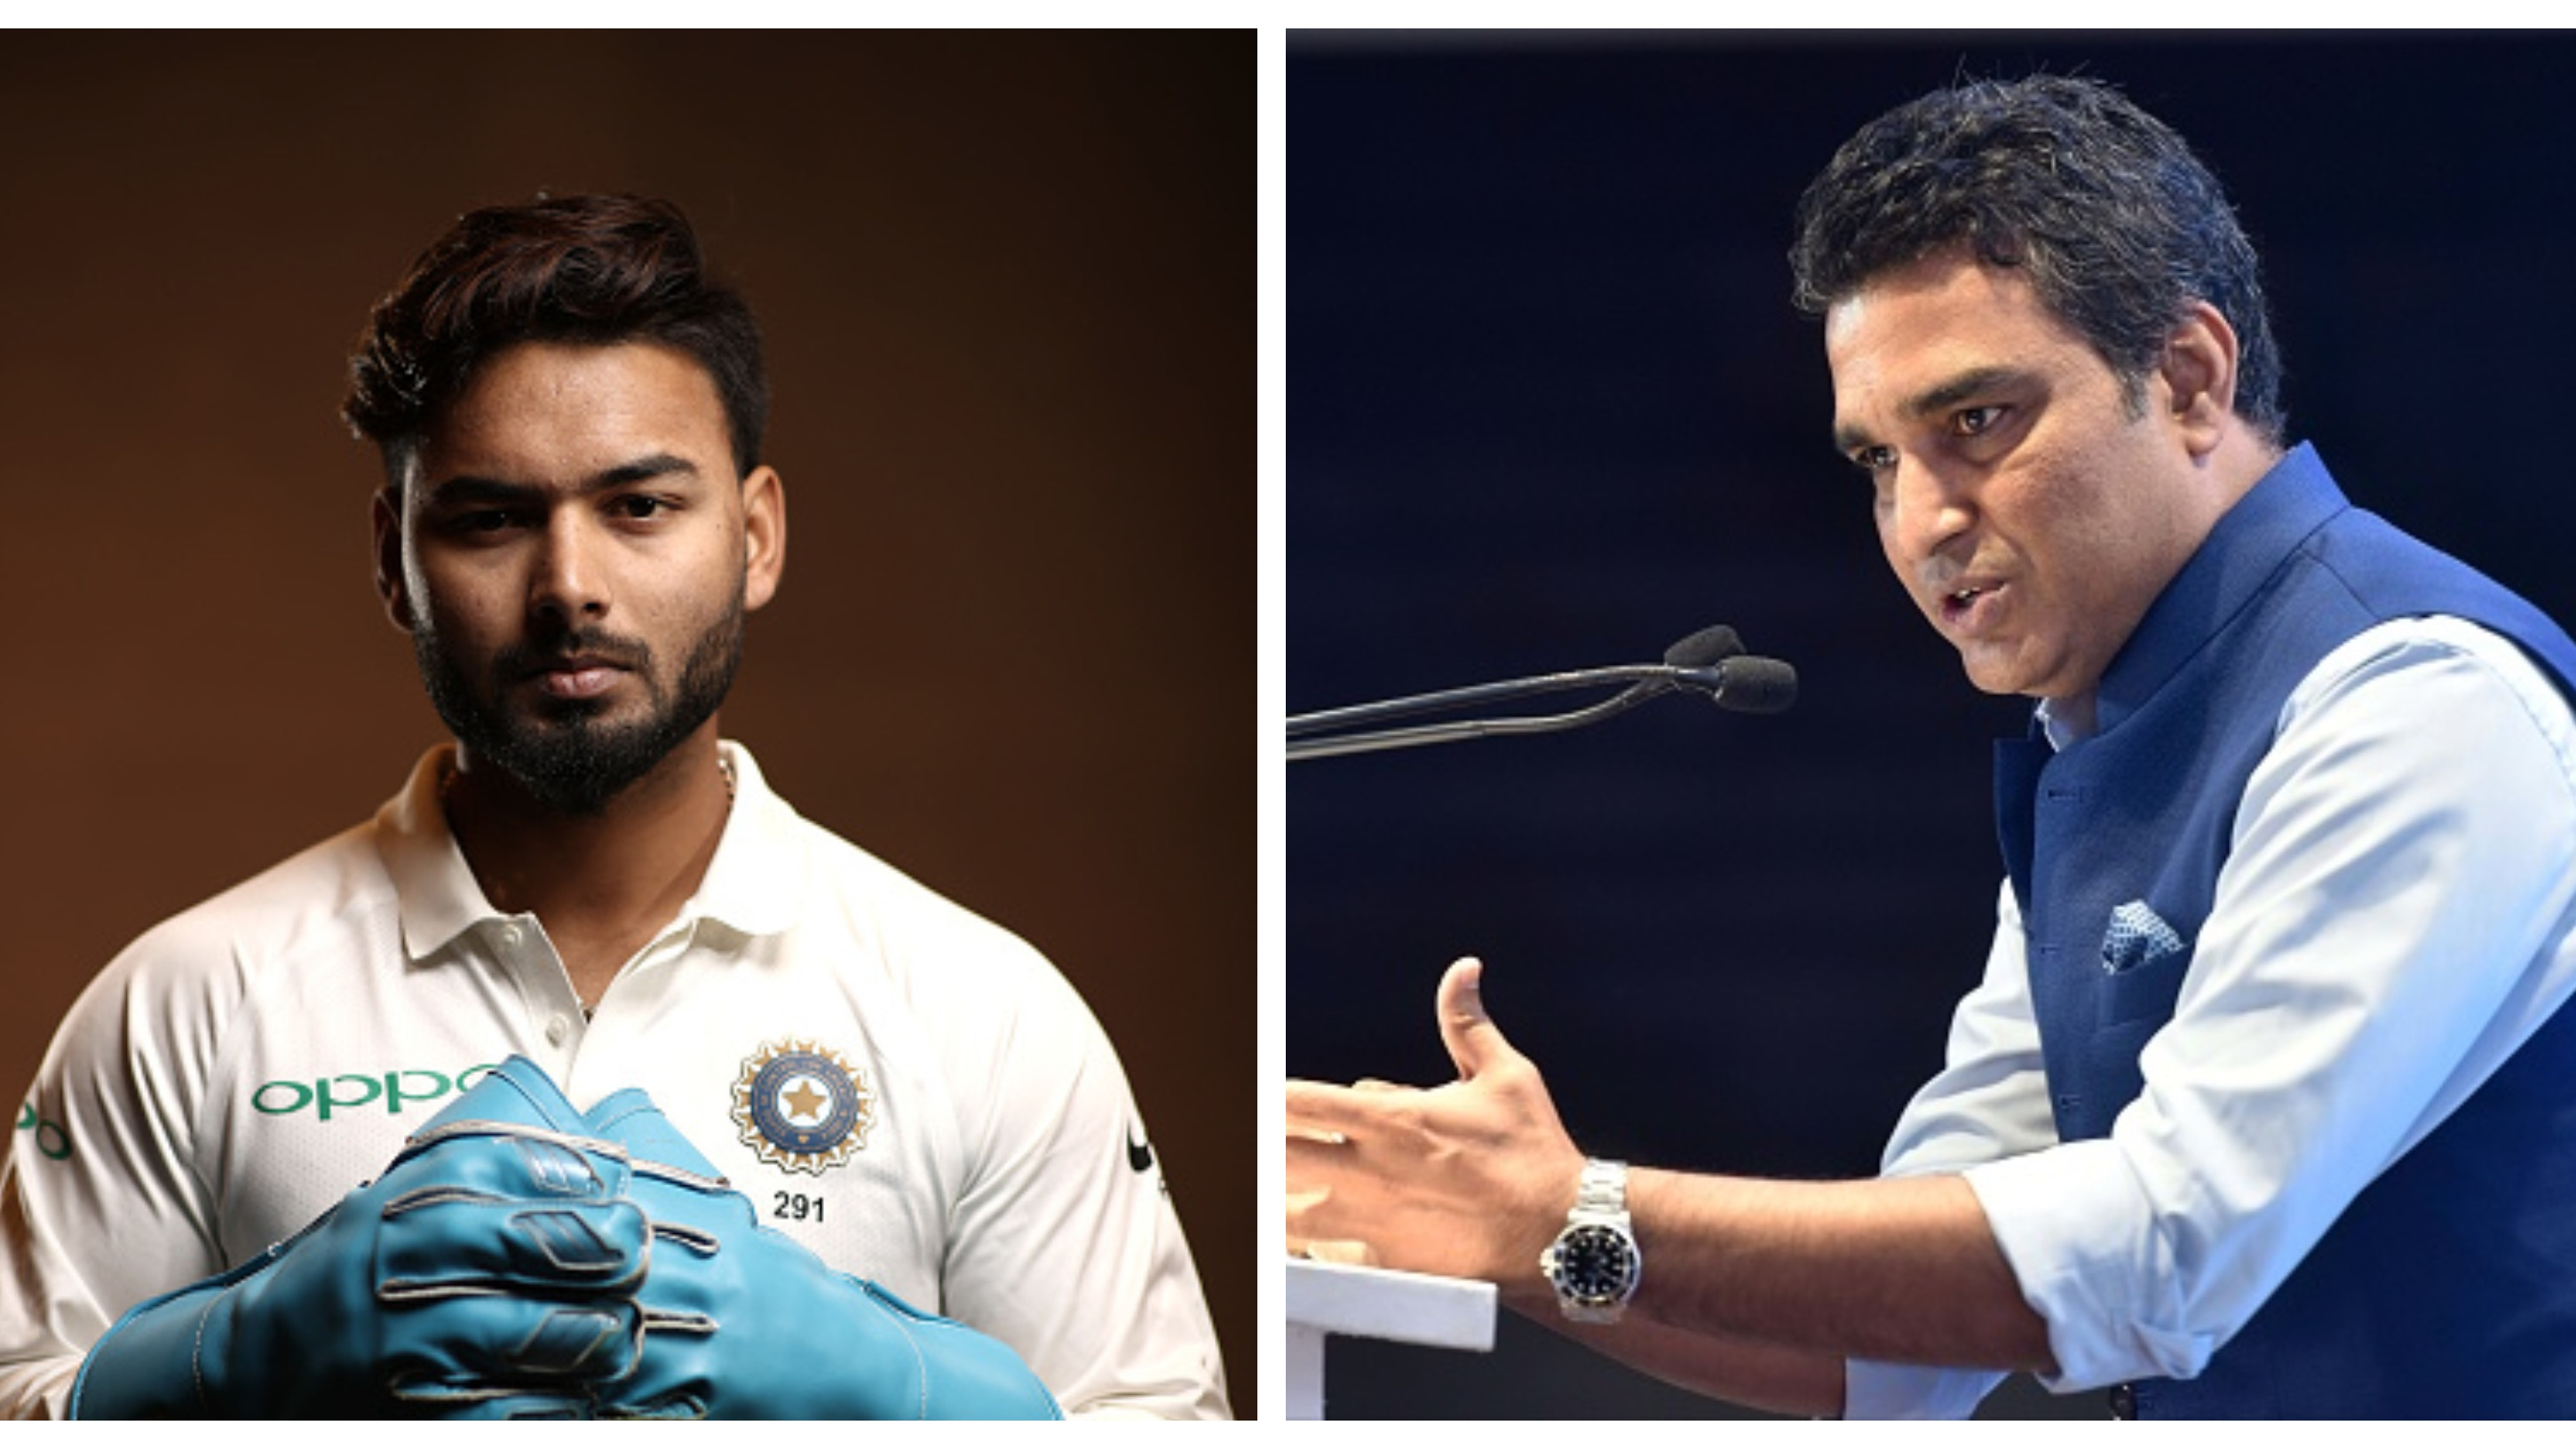 AUS v IND 2018-19: Manjrekar urges Rishabh Pant to focus on his keeping, not talking